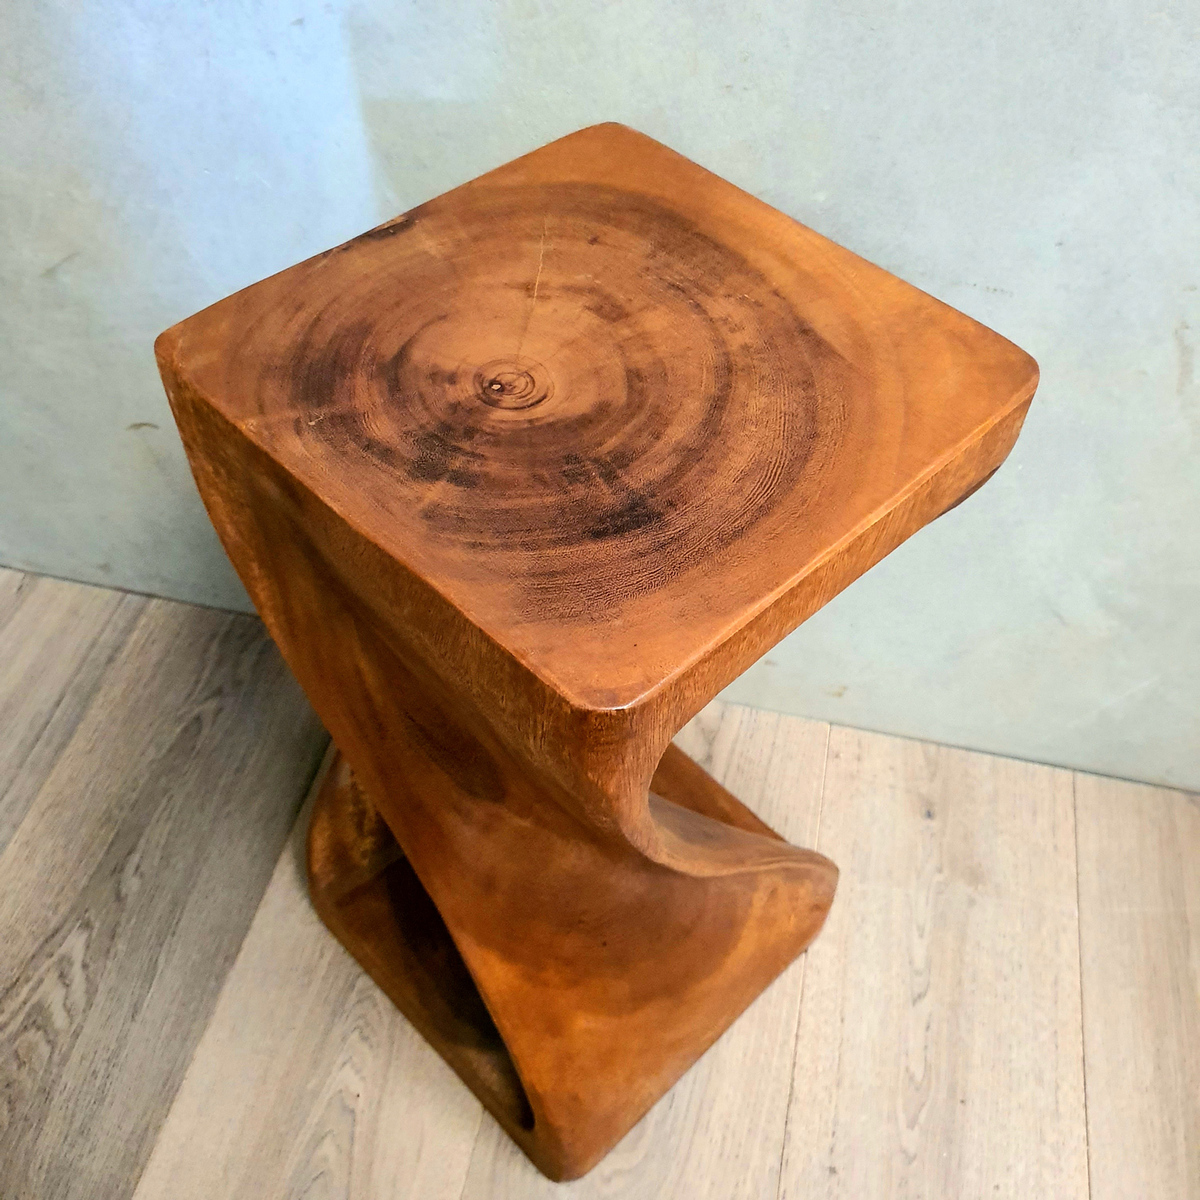 Wood Stump Stool Wooden Side Table Corner Table Buy Side